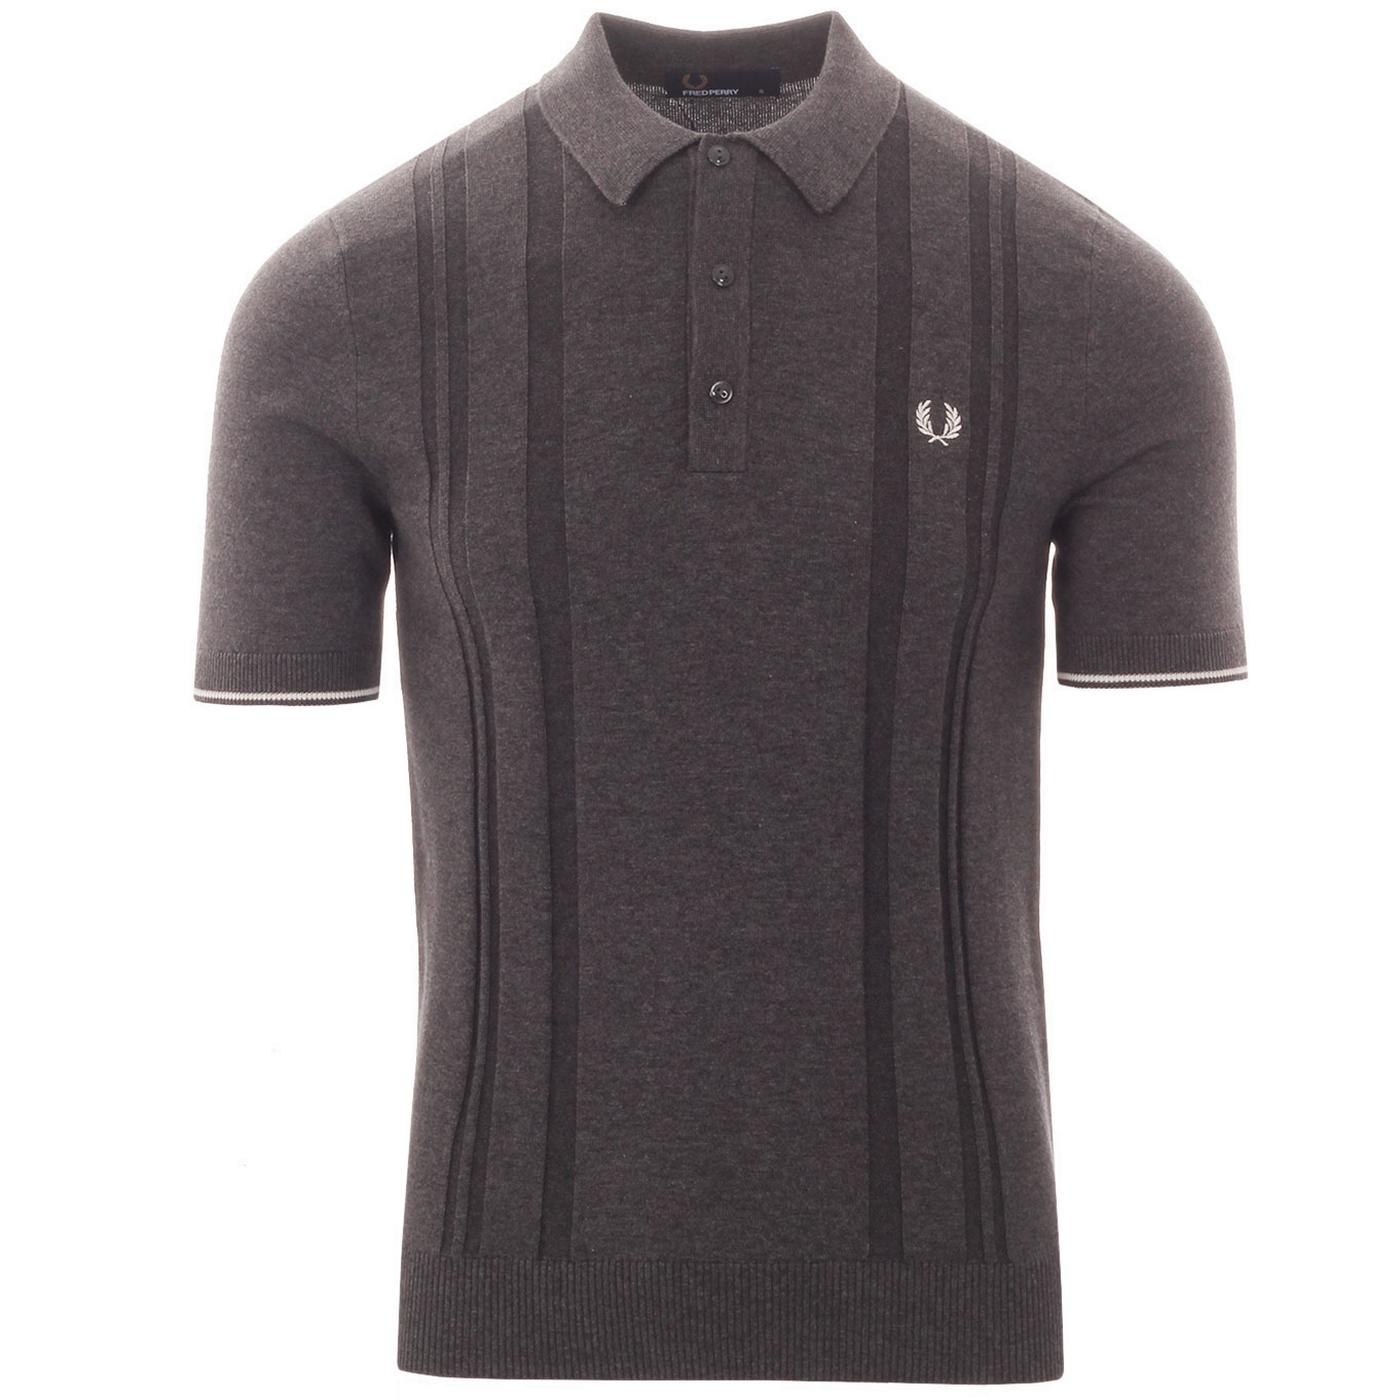 FRED PERRY Mod Knitted Dropstitch Stripe Polo